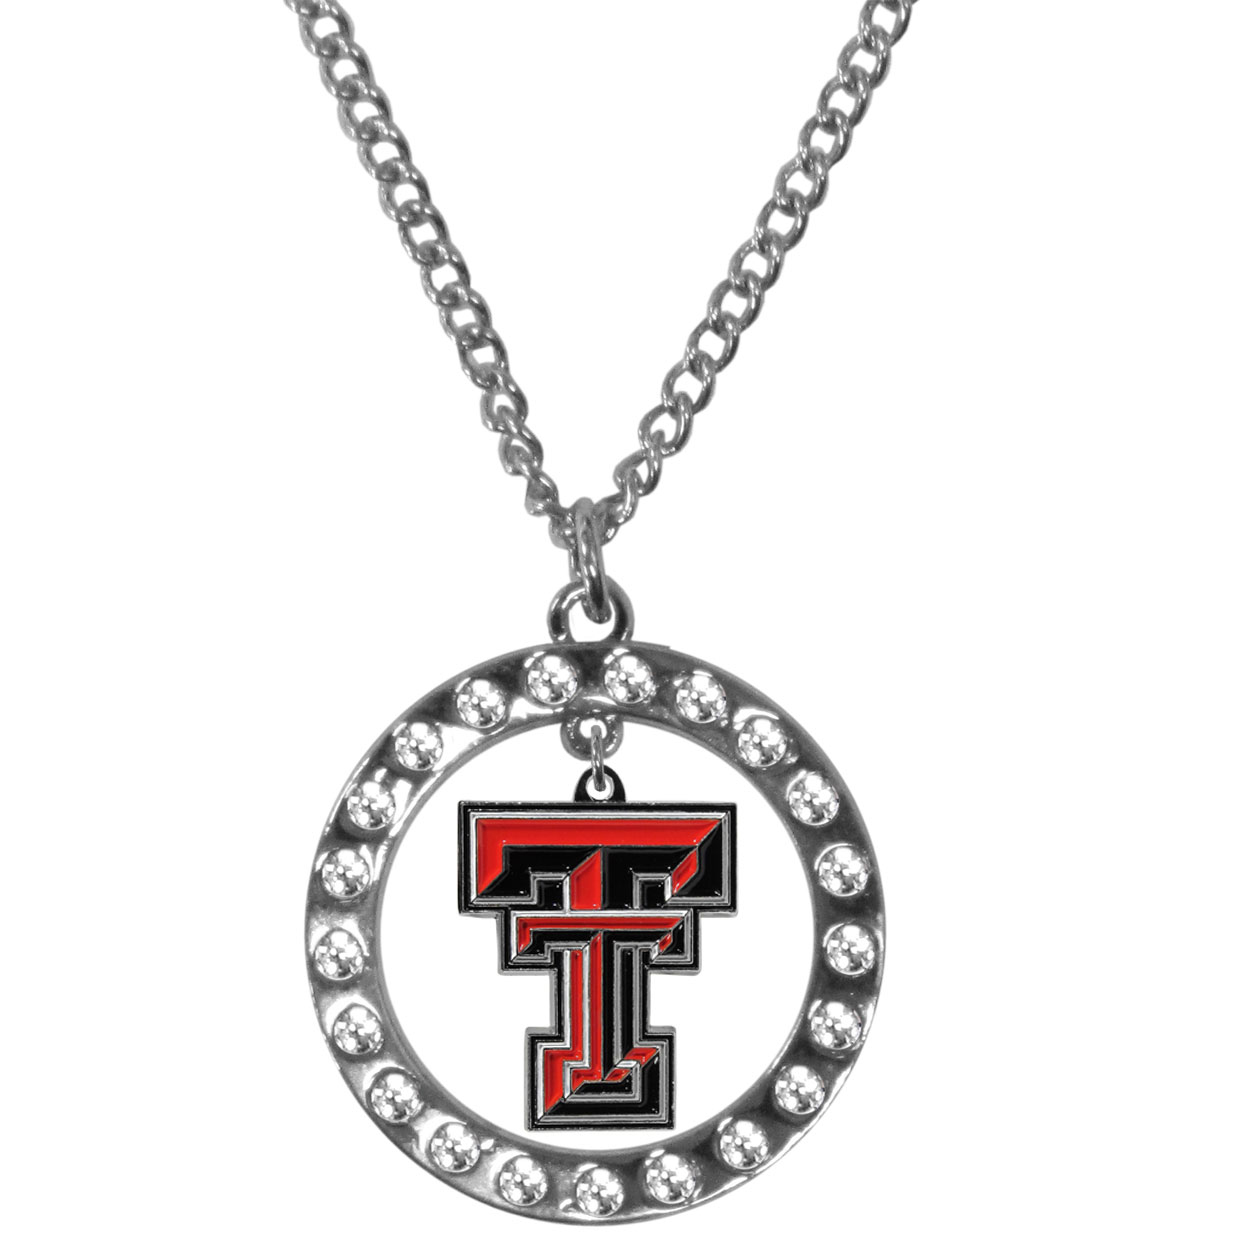 Texas Tech Raiders Rhinestone Hoop Necklaces - Our Texas Tech Raiders rhinestone hoop necklace comes on an 18 inch chain and features a hoop covered in rhinestones with a high polish chrome finish and a cast and enameled team charm dangling in the center.